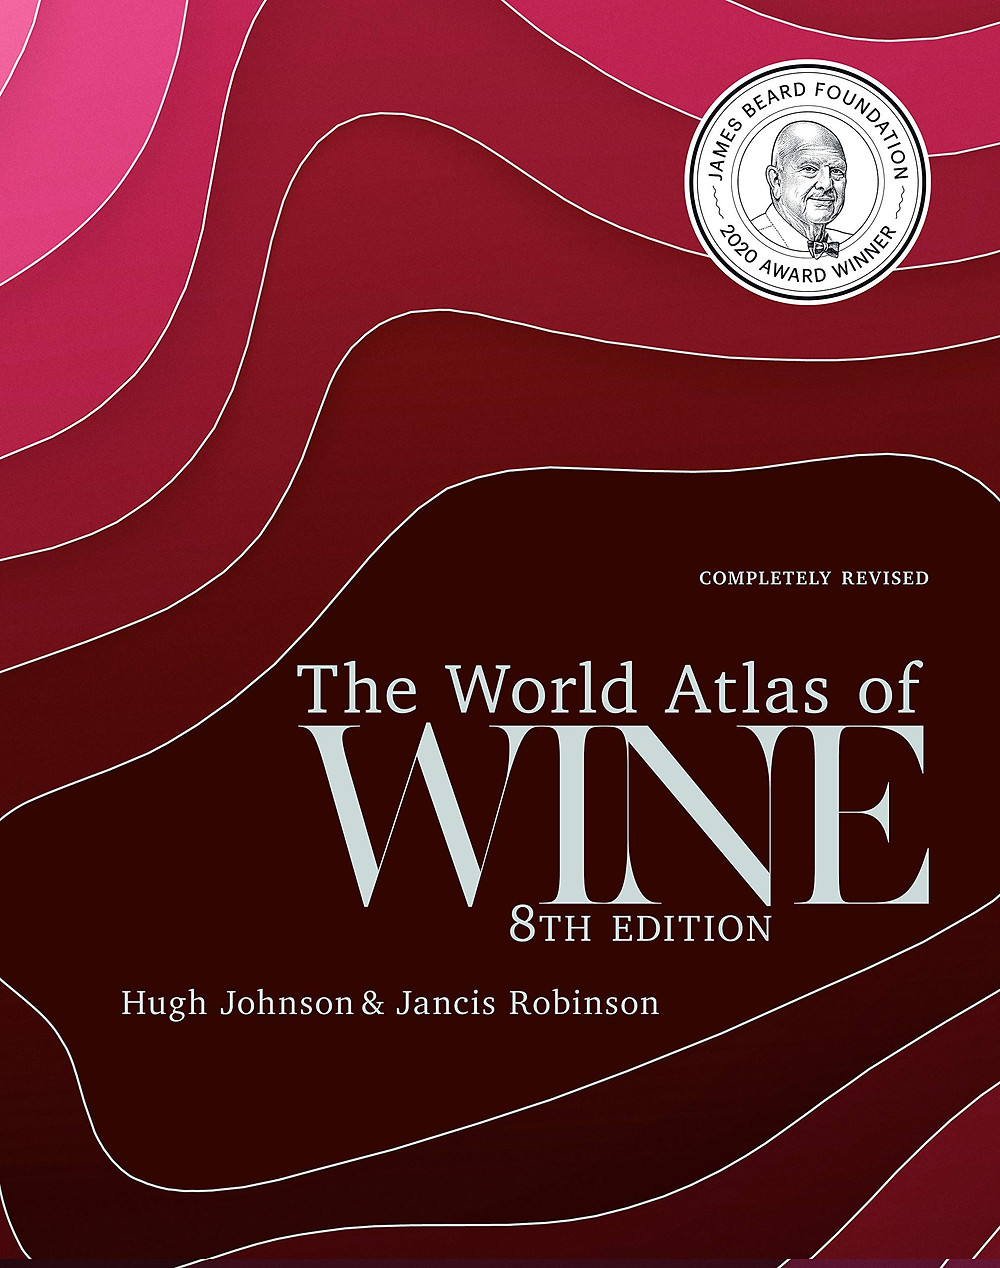 The World Atlas of wine 8th edition book written by hugh johnson and jancis robertson, wine books